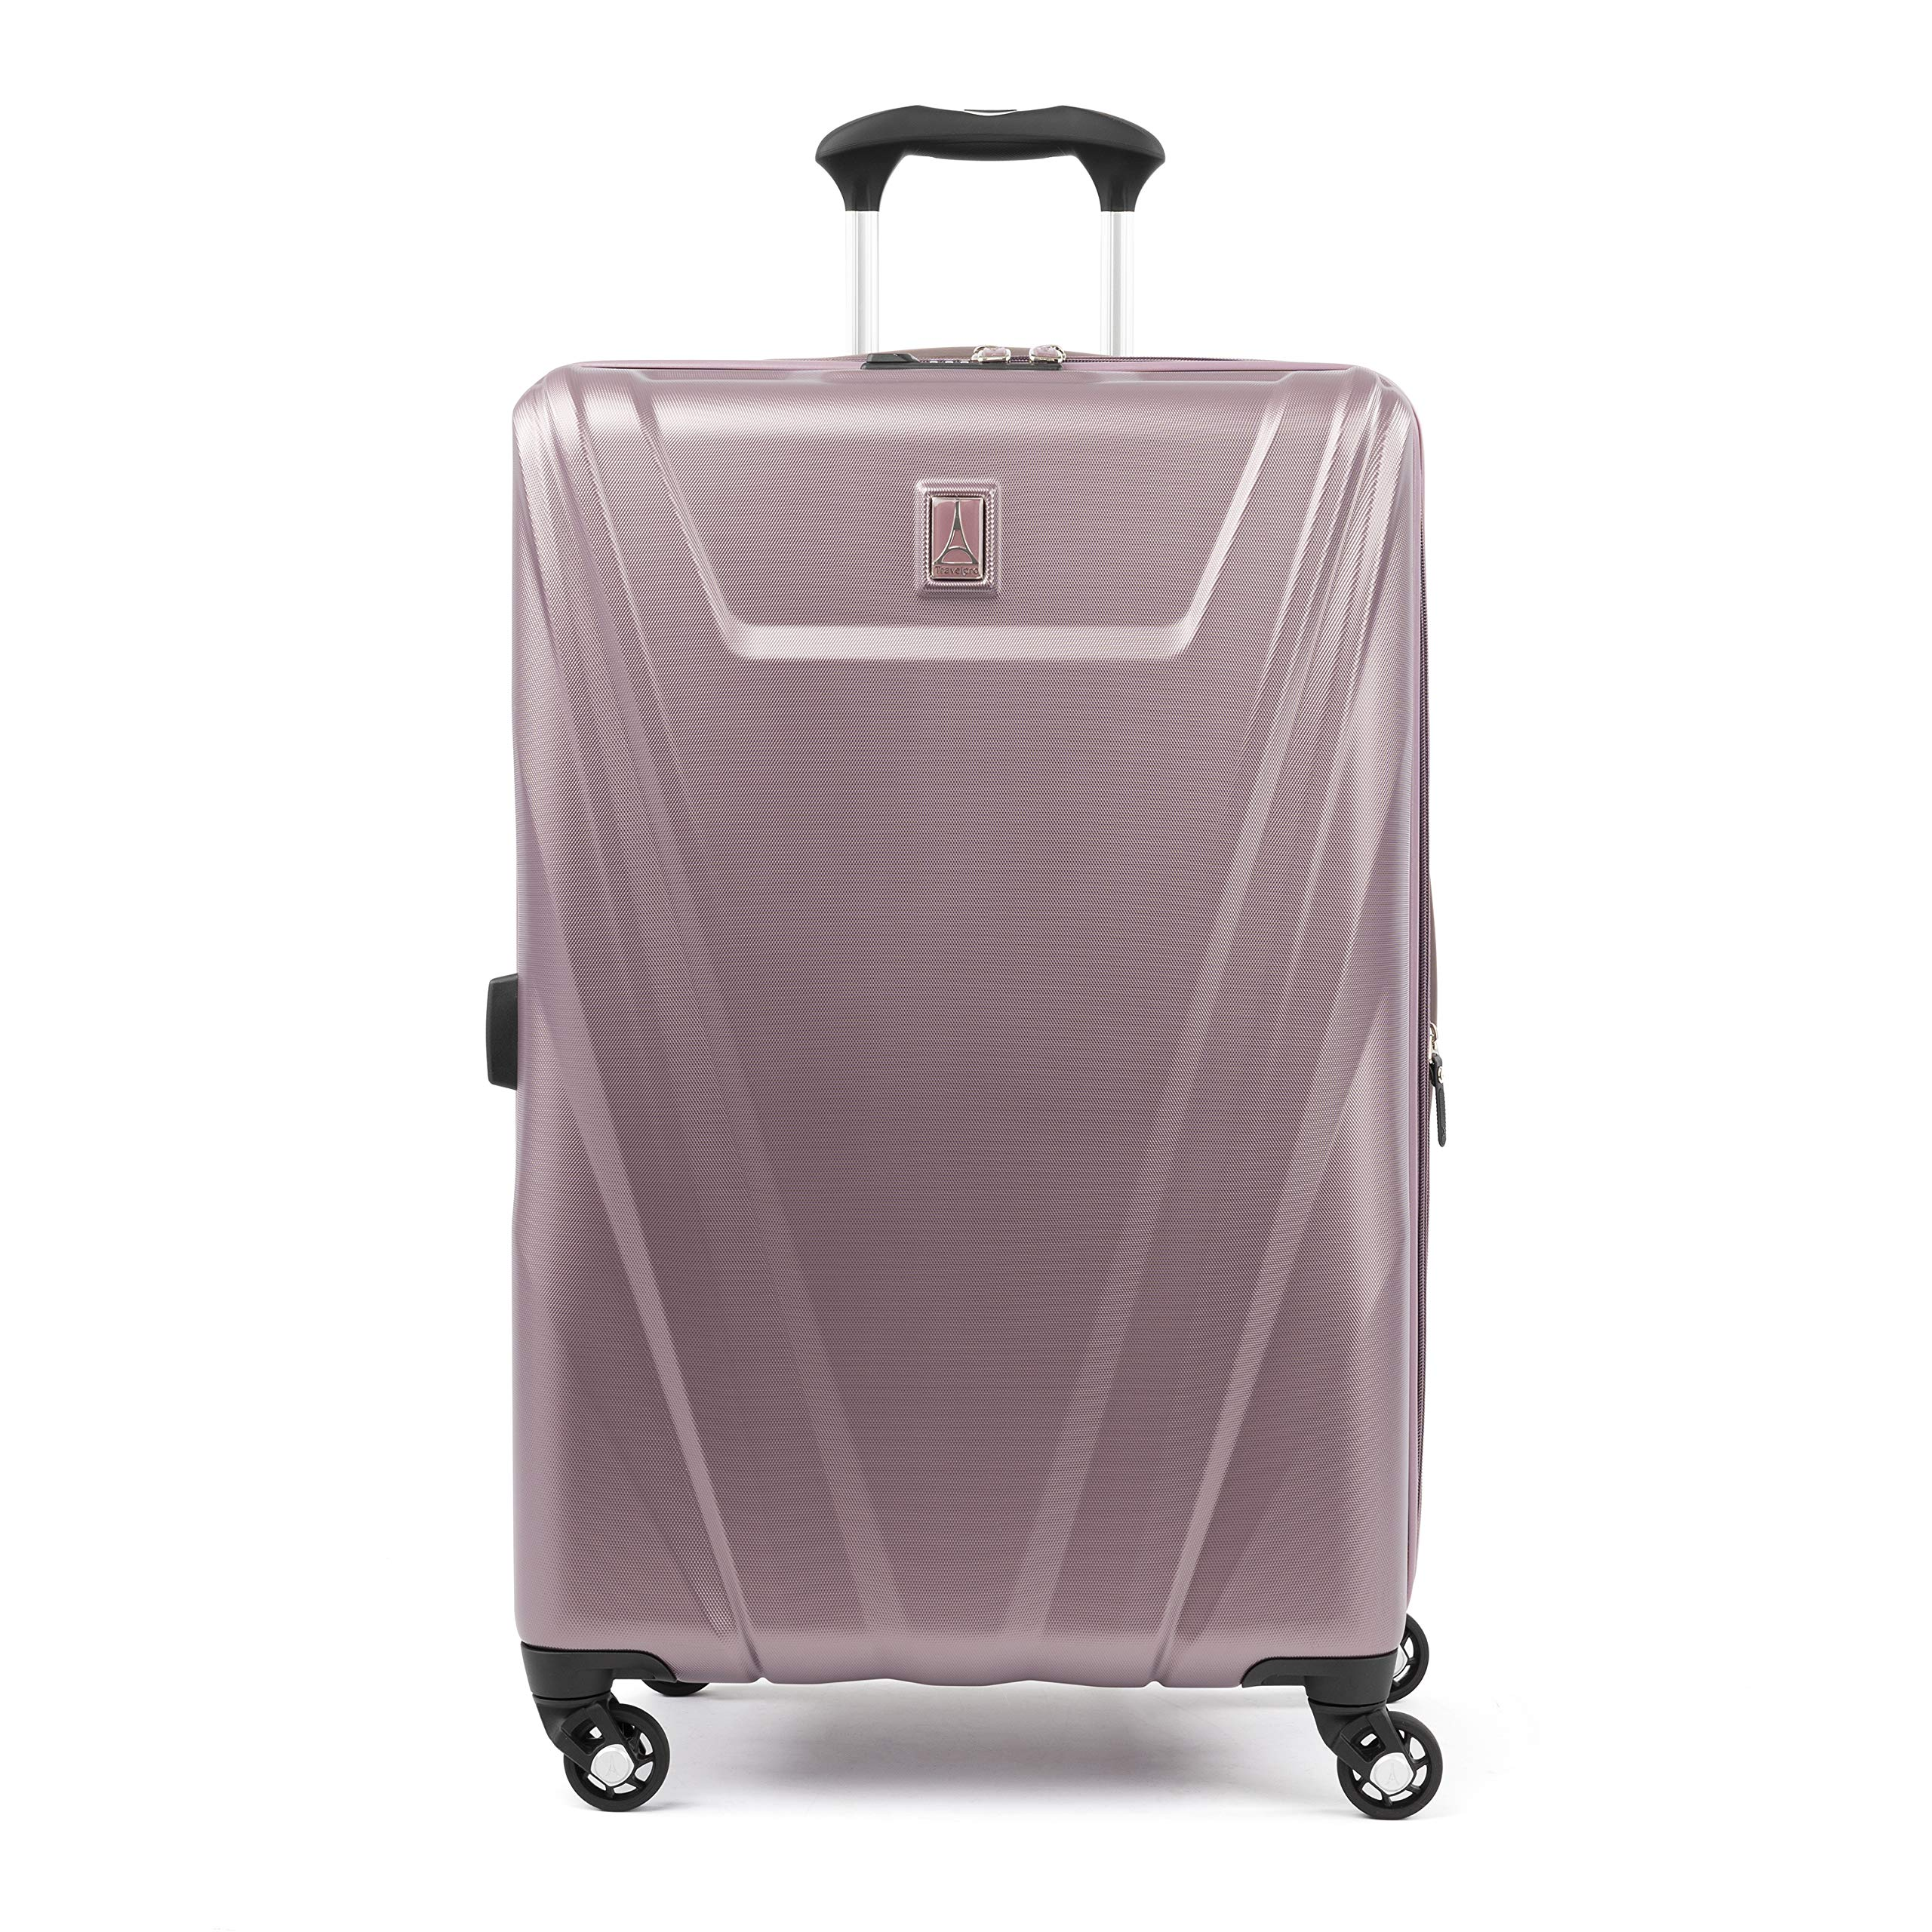 Travelpro Expandable Checked-Medium, Dusty Rose by Travelpro